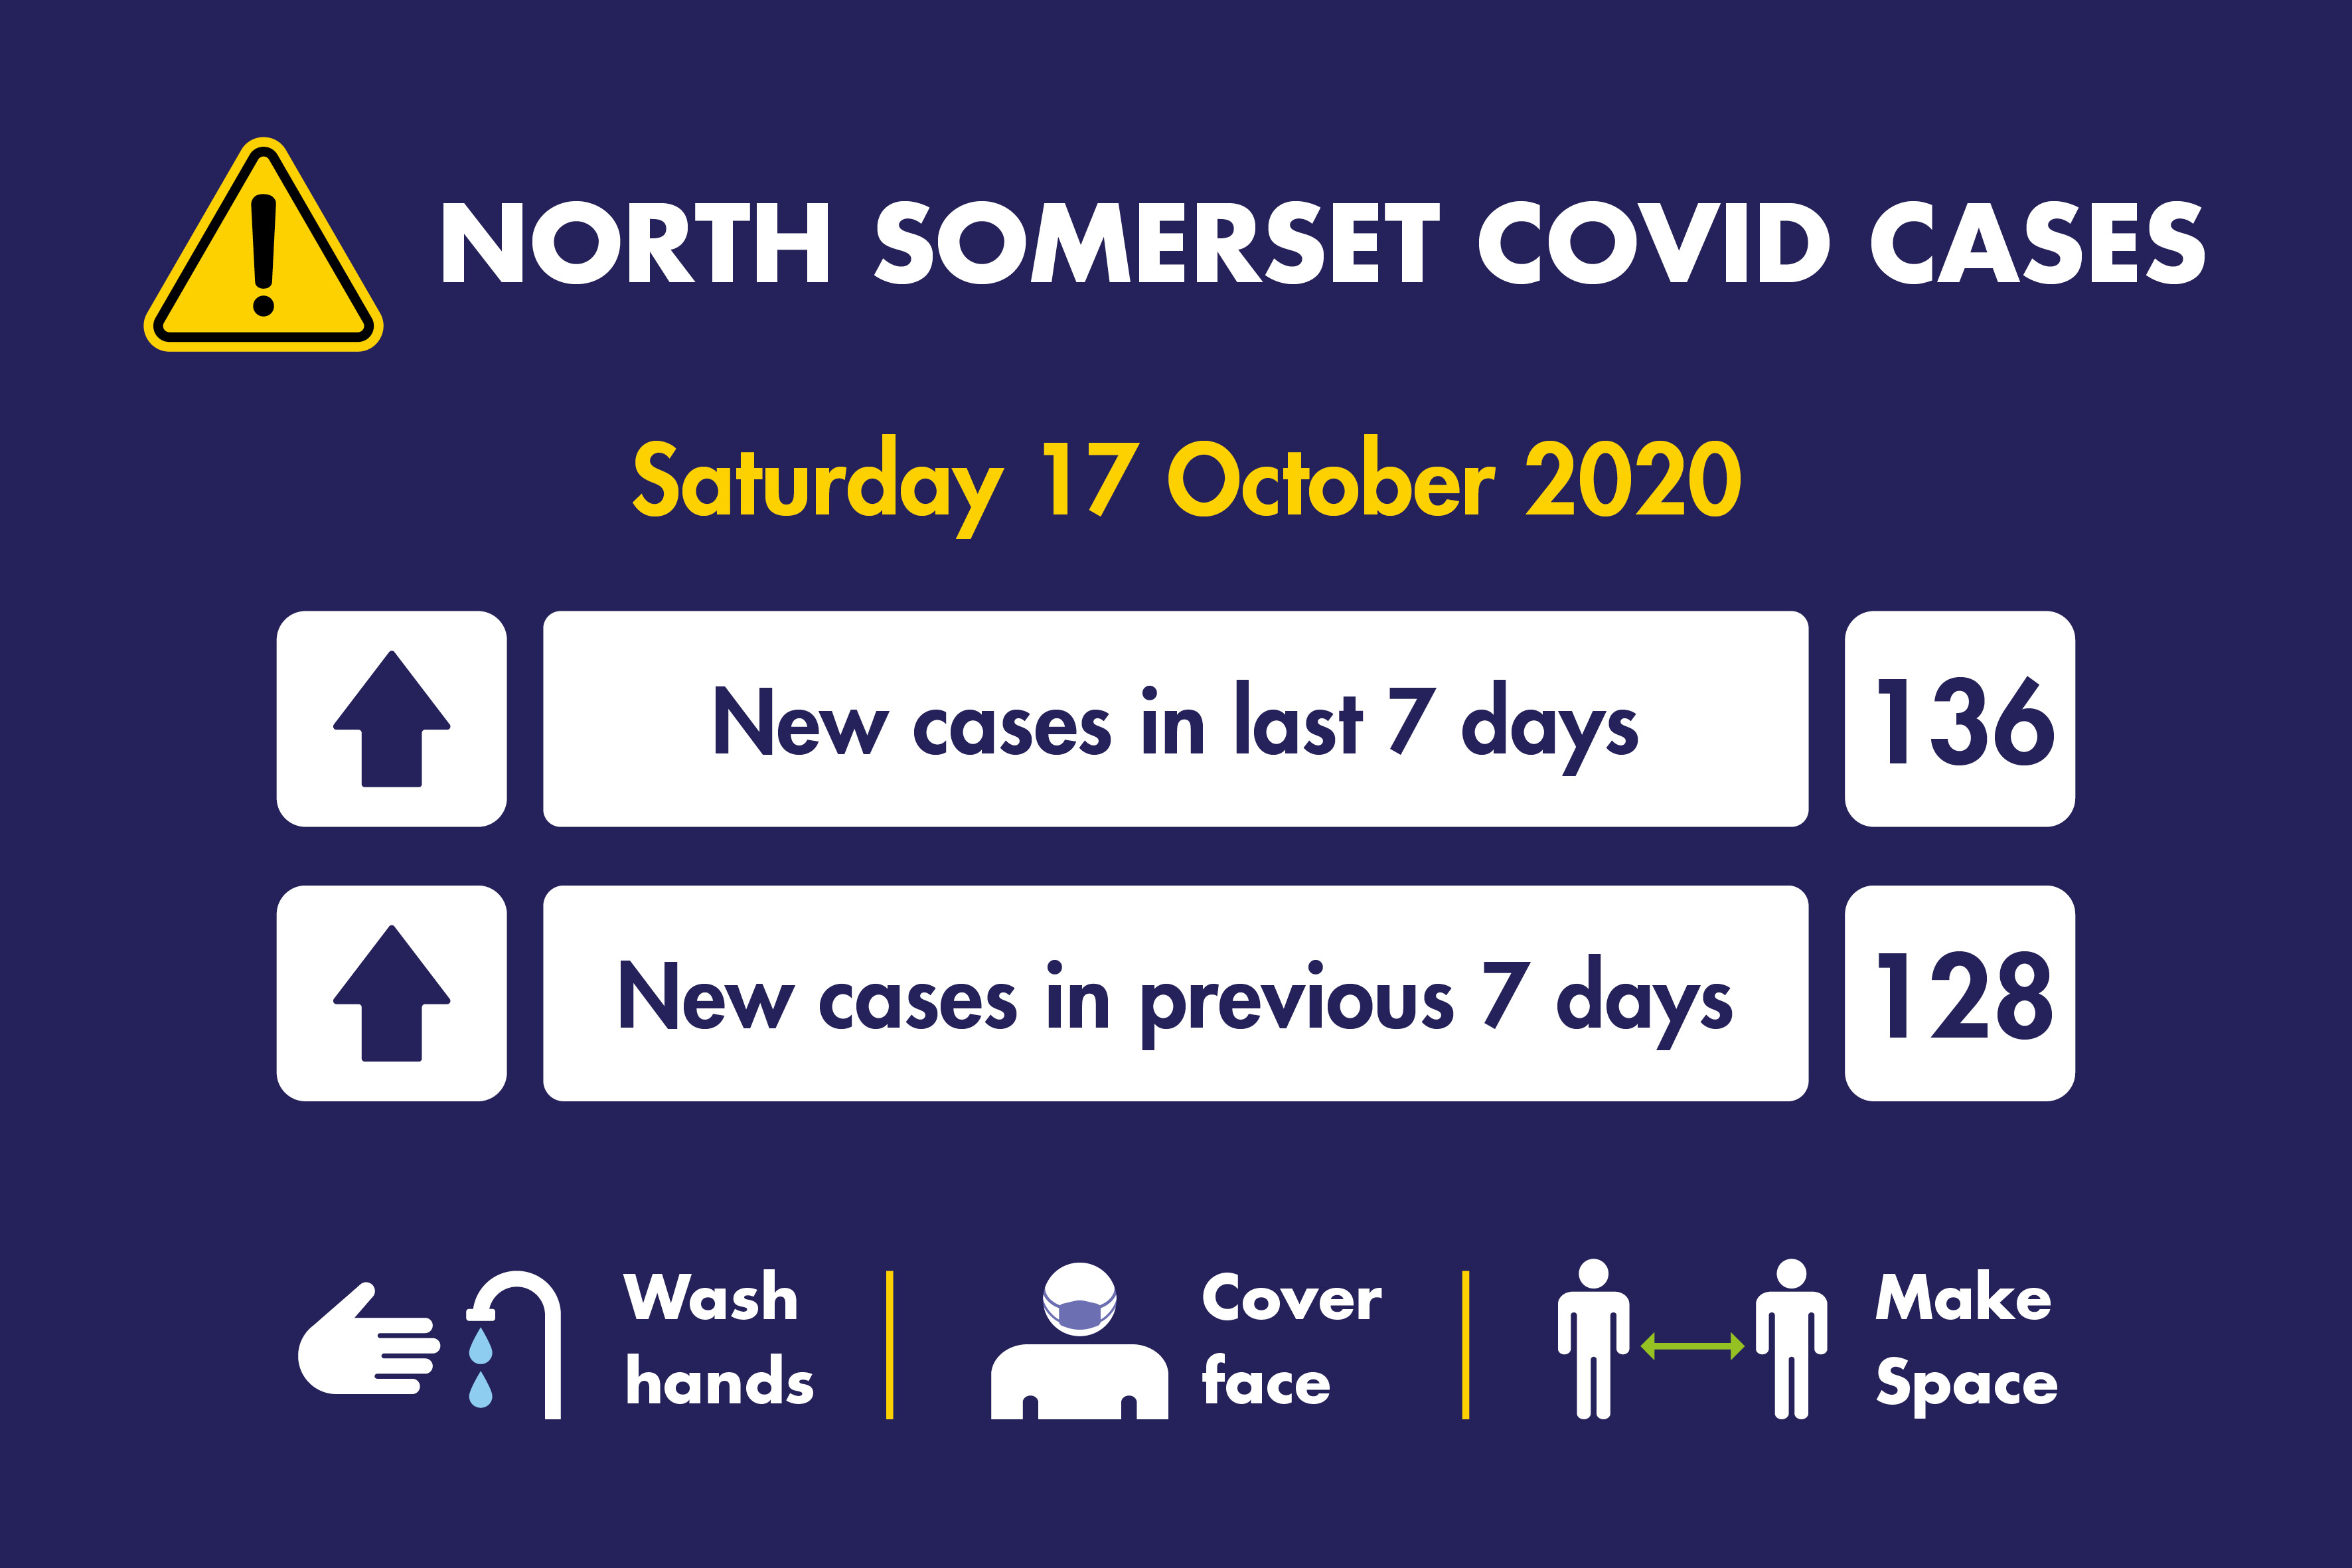 Infographic detailing new coronavirus cases as of Saturday 17 October - there were 136 new cases in the last 7 days, compared with 128 the previous week.